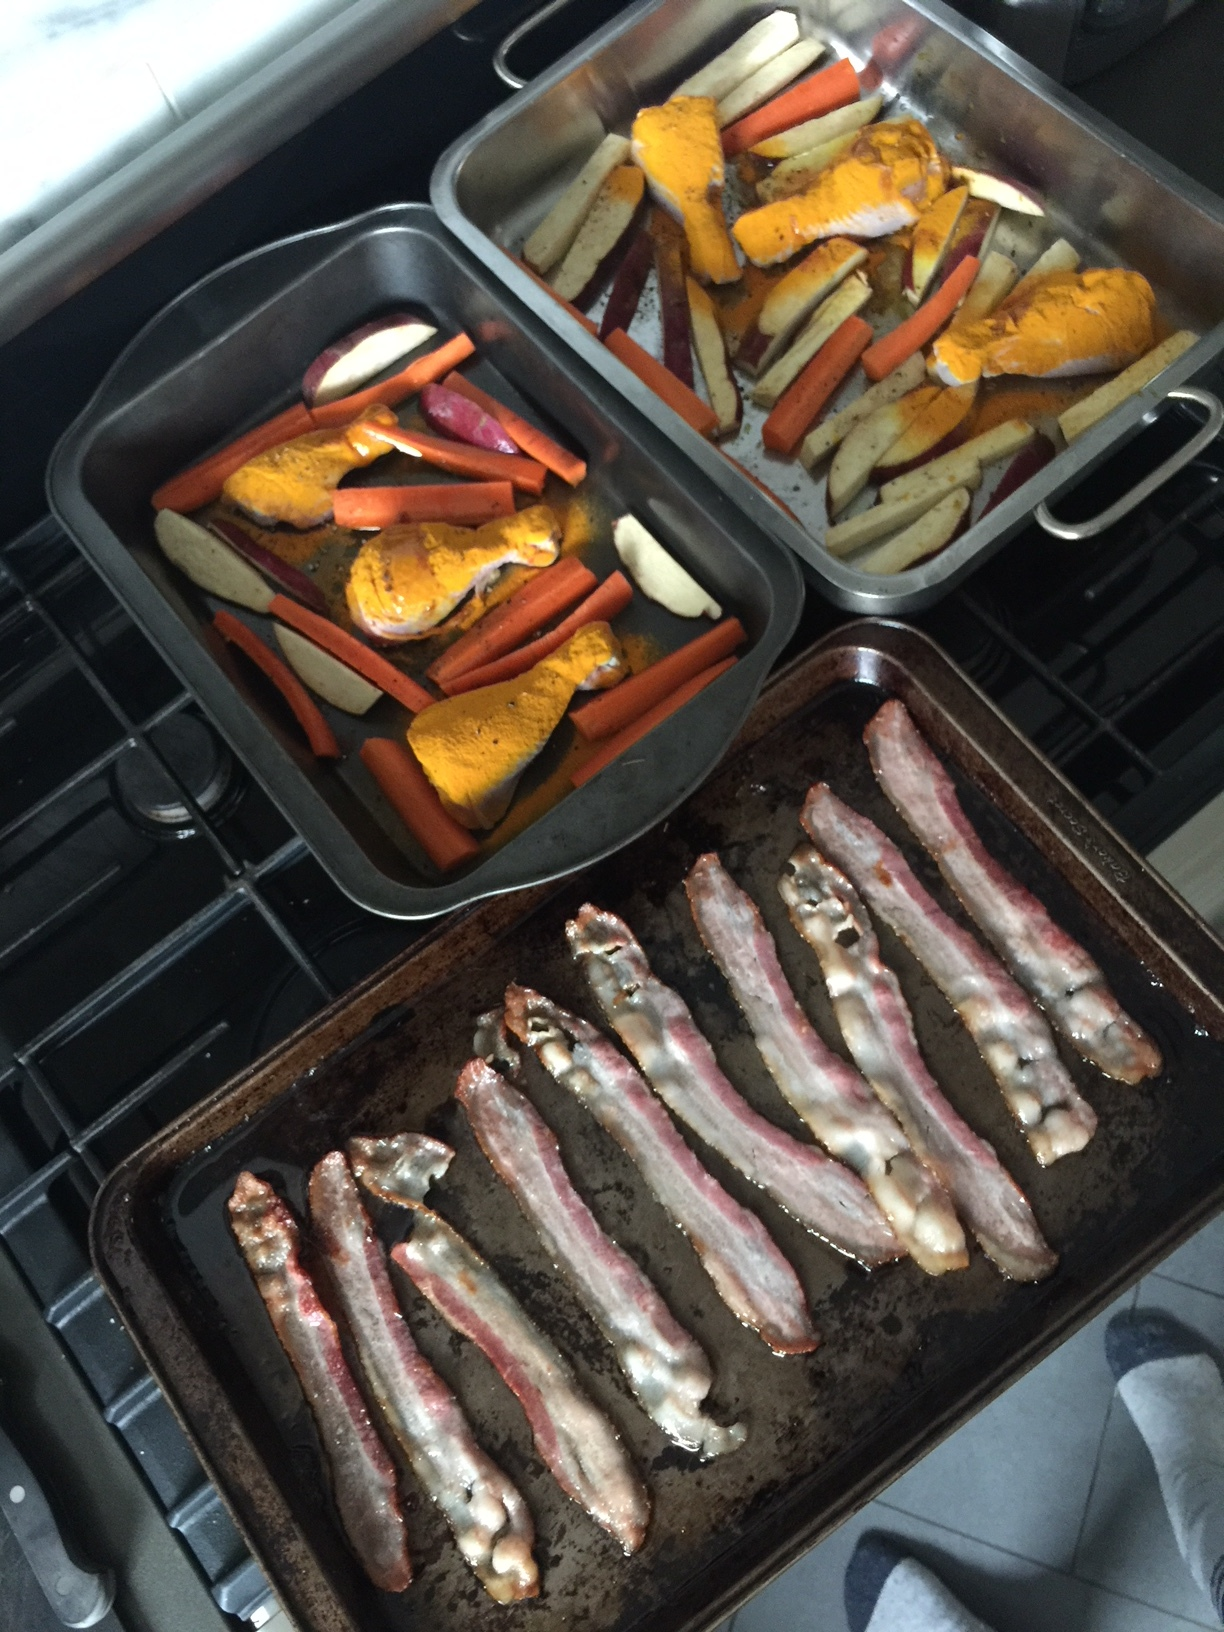 Bacon going in the oven (with two trays of turmeric spiced drumsticks, carrots, and Japanese sweet potato all roasted in bacon fat... um,  HELLO ).